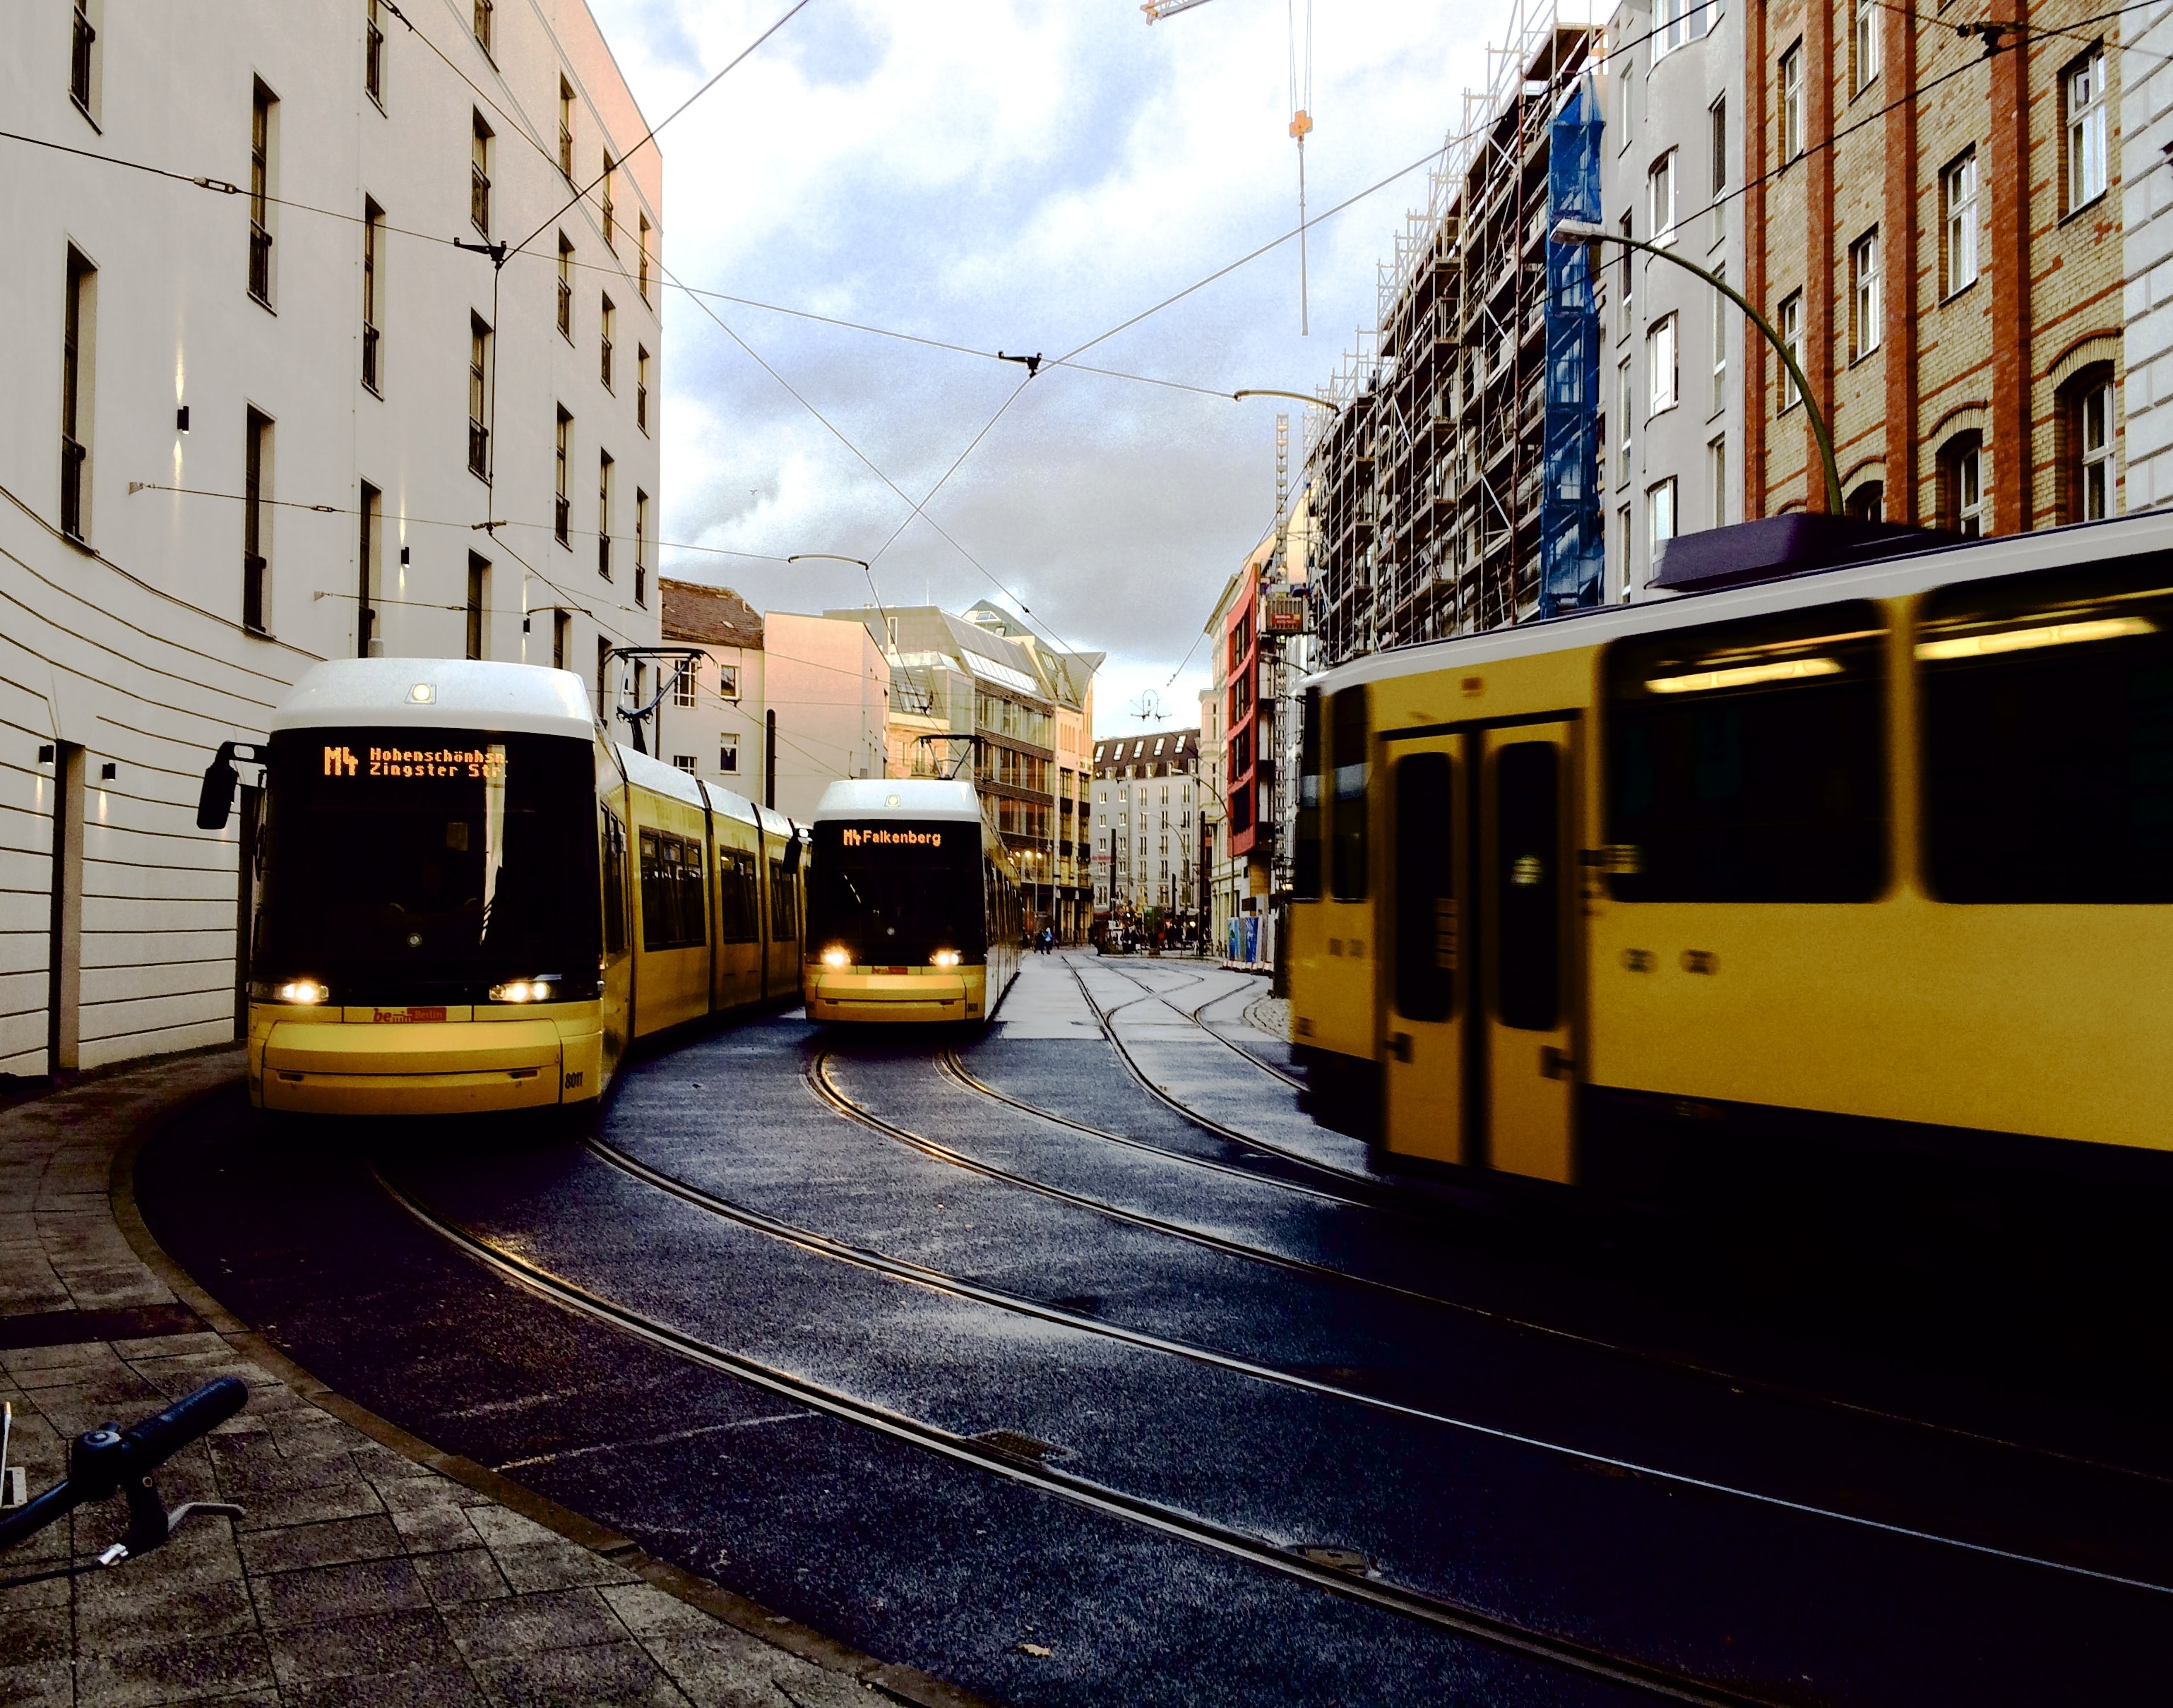 Yellow streetcars around the corner of a city street